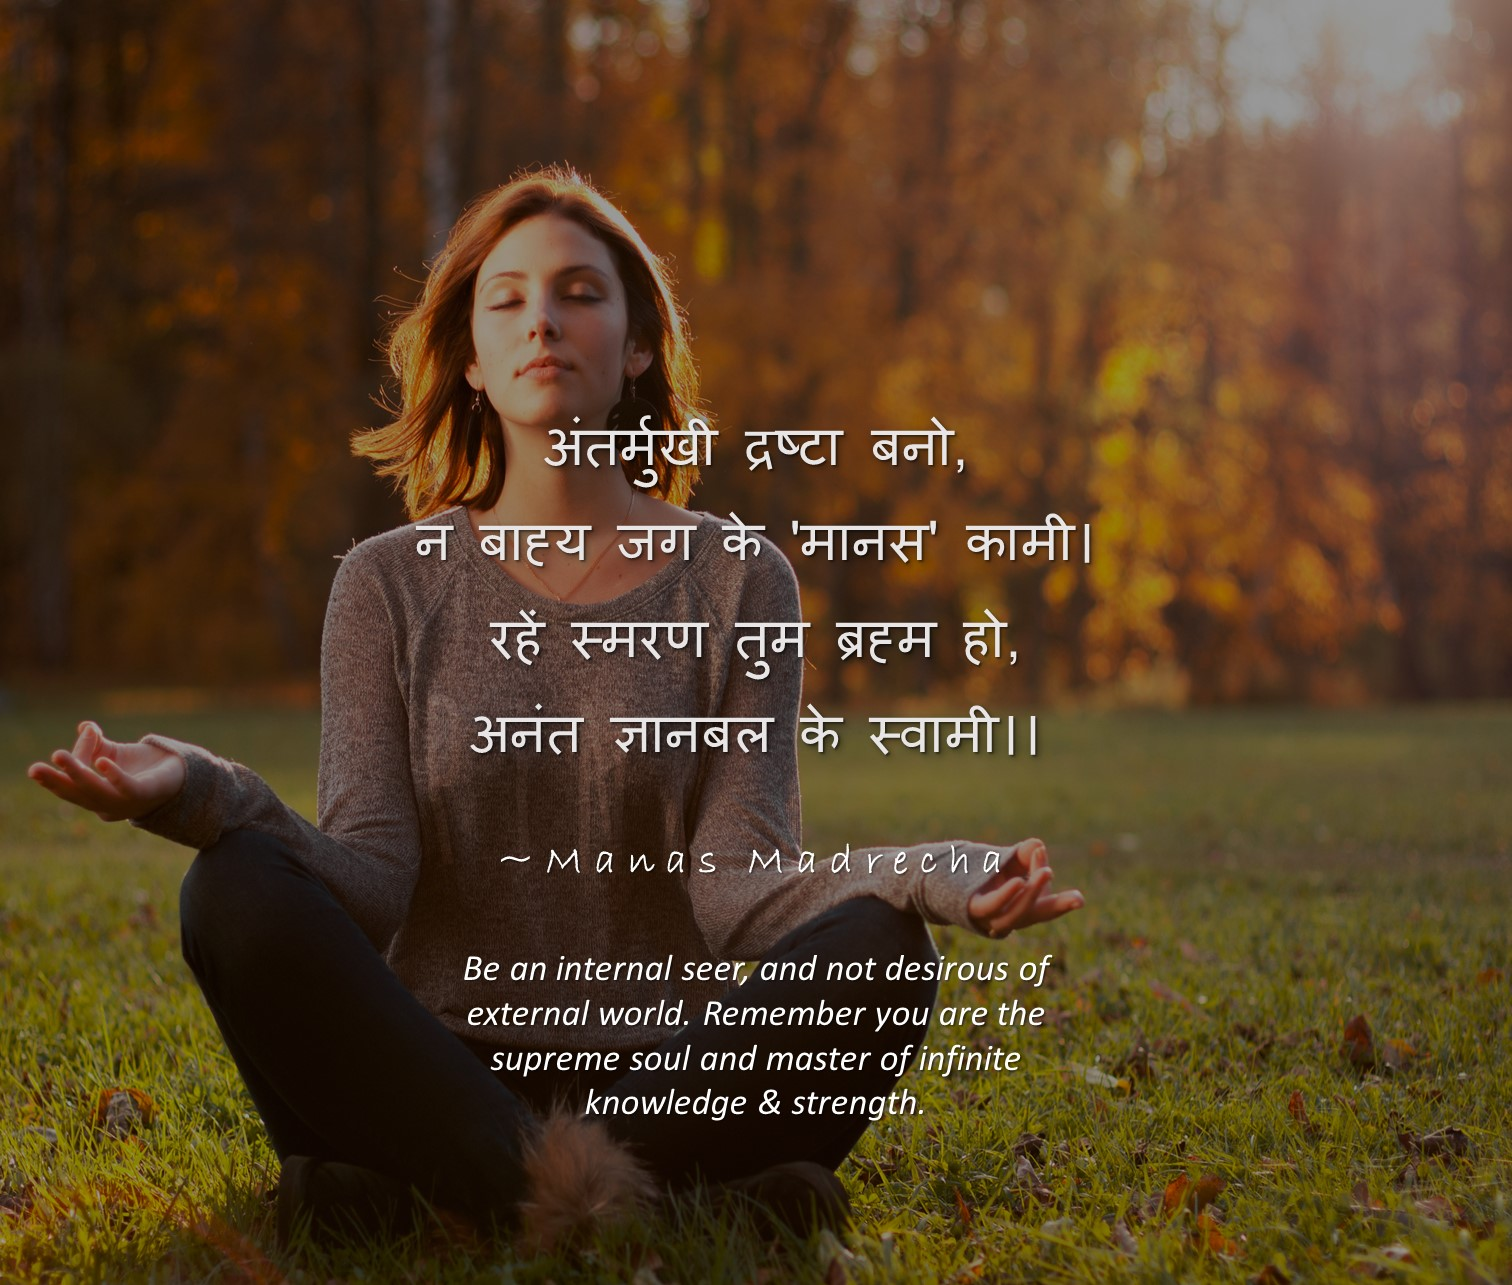 girl meditating, girl in nature, happy girl in nature, girl doing yoga, girl sitting cross legged, girl sitting alone image, girl mood wallpaper, girl in sunshine, girl in forest, girl eyes closed, girl praying, Manas Madrecha, Manas Madrecha blog, simplifying universe, hindi poem on self, hindi quotes, hindi shayari, inspirational poem, inspirational quotes, motivational quotes, first talk about yourself, pehle khud ki baat karo,